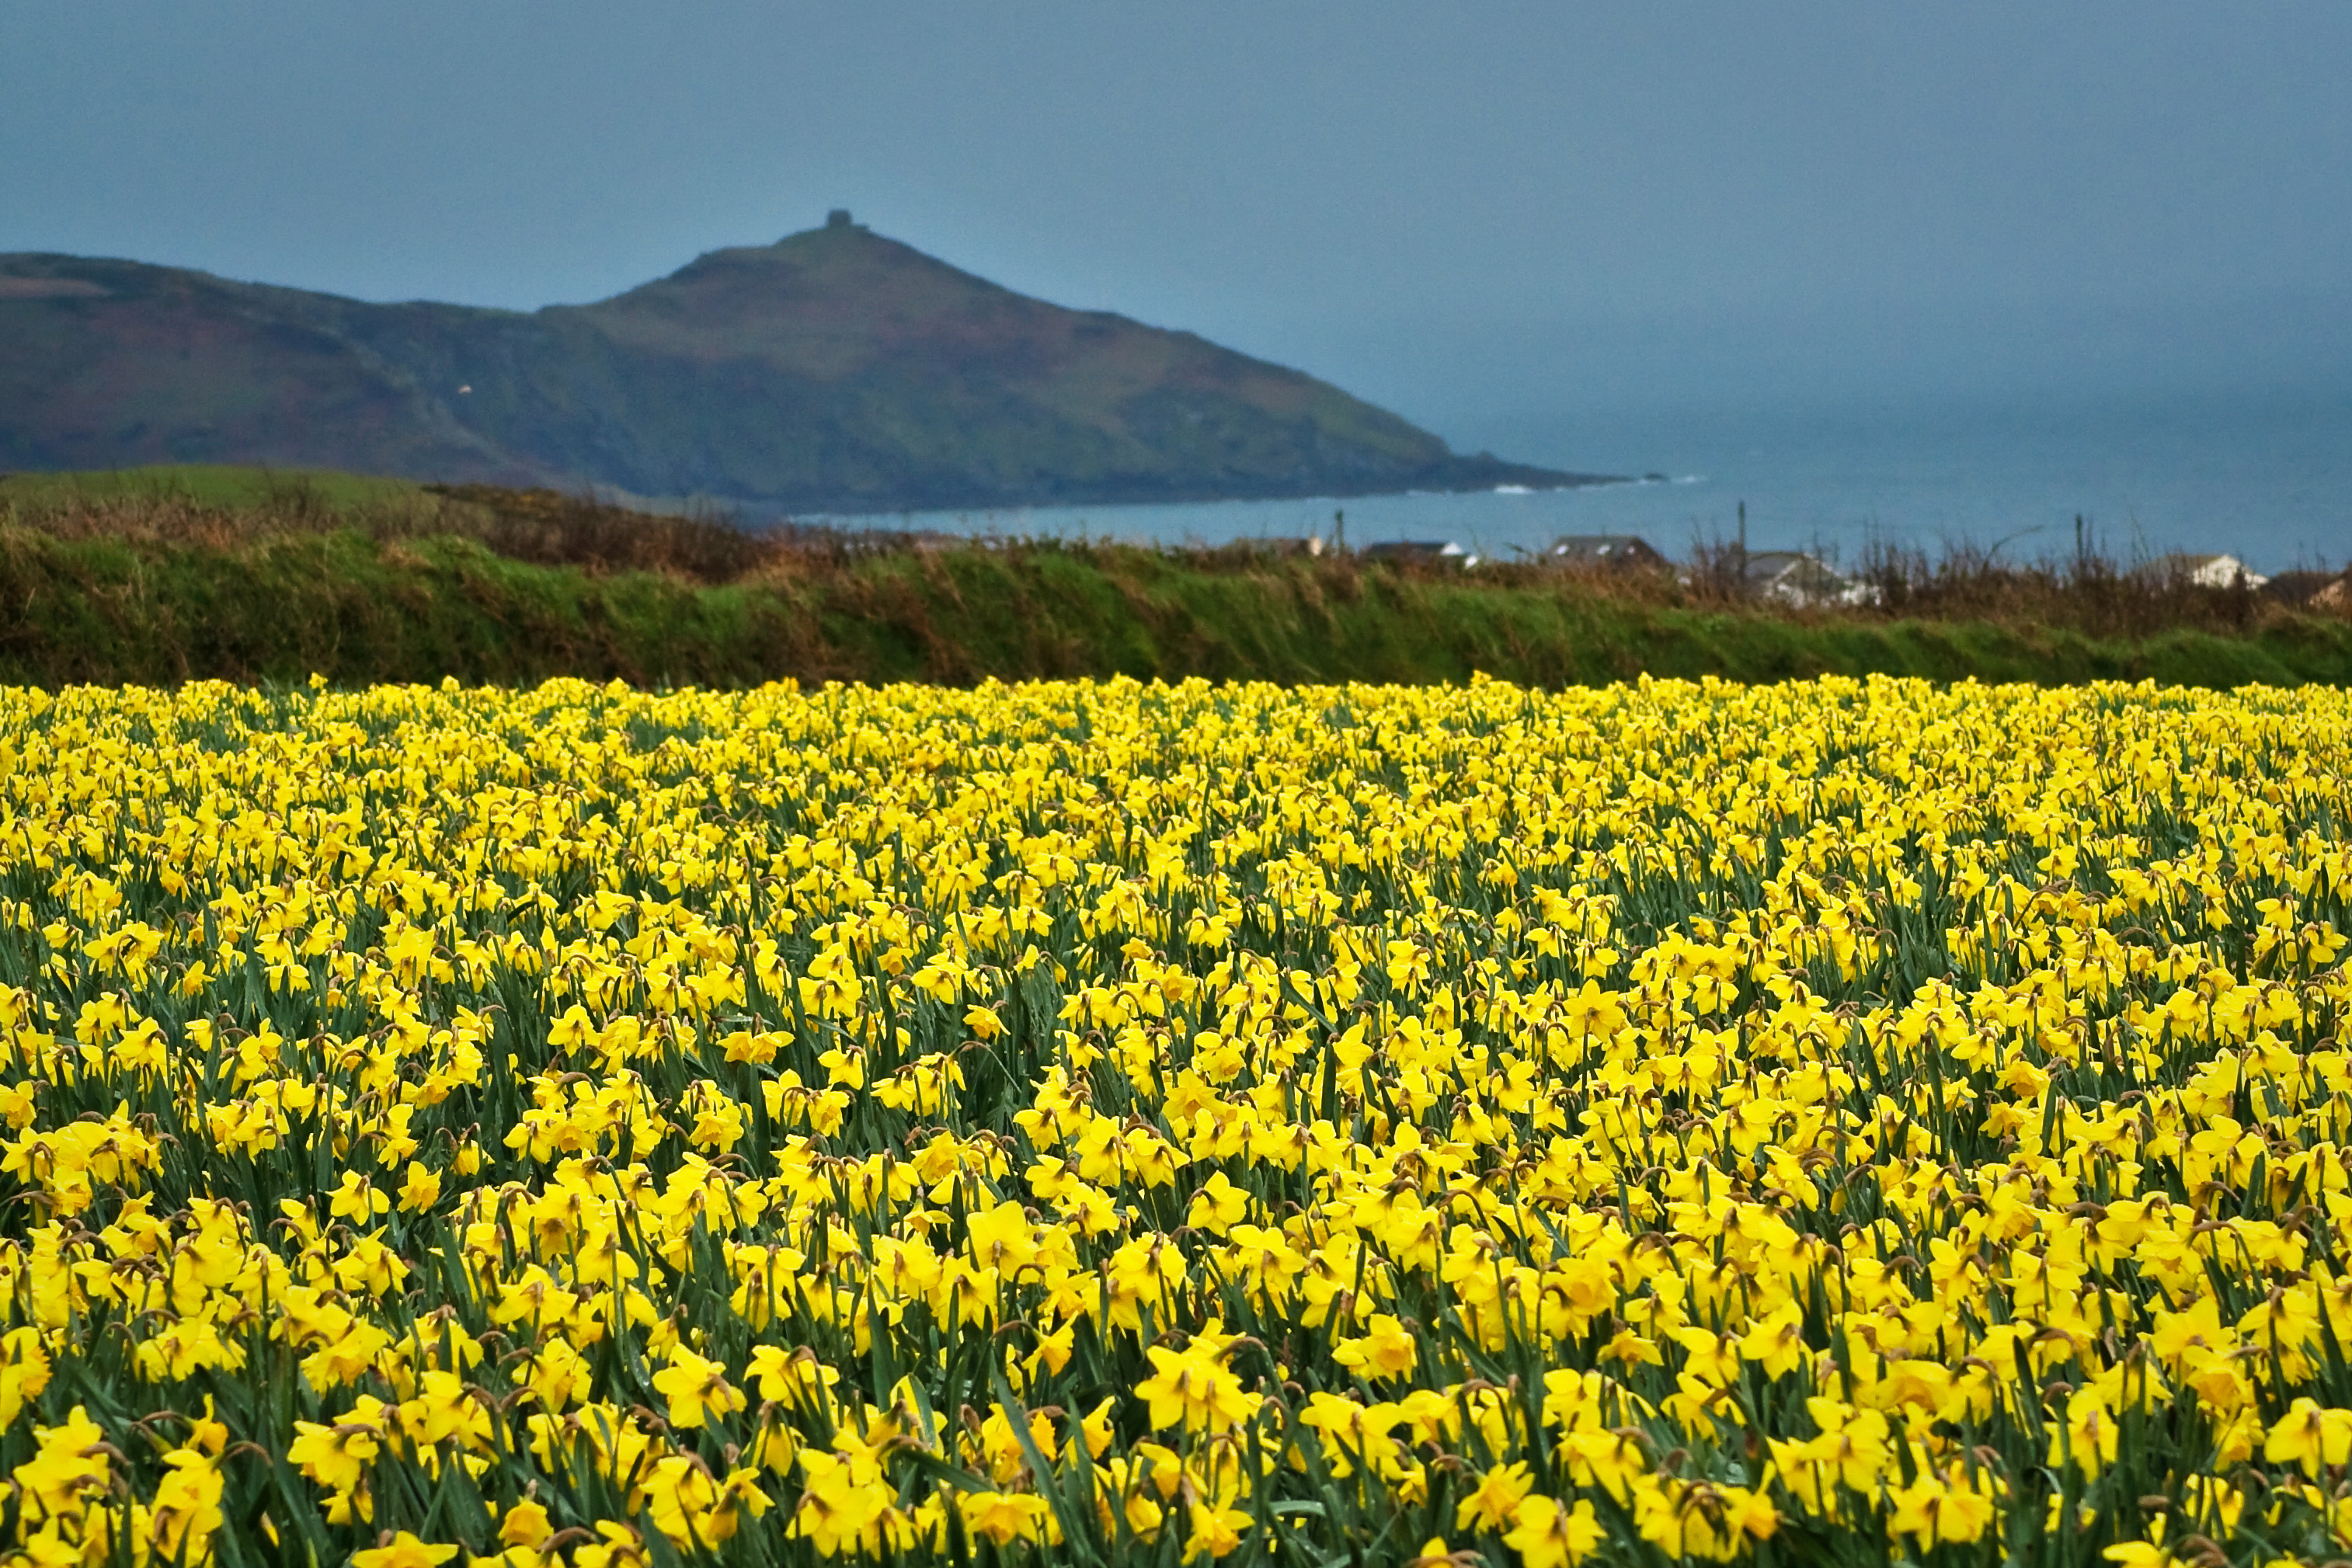 william wordsworth poem i wandered lonely as a cloud  english daffodil field in south east cornwall